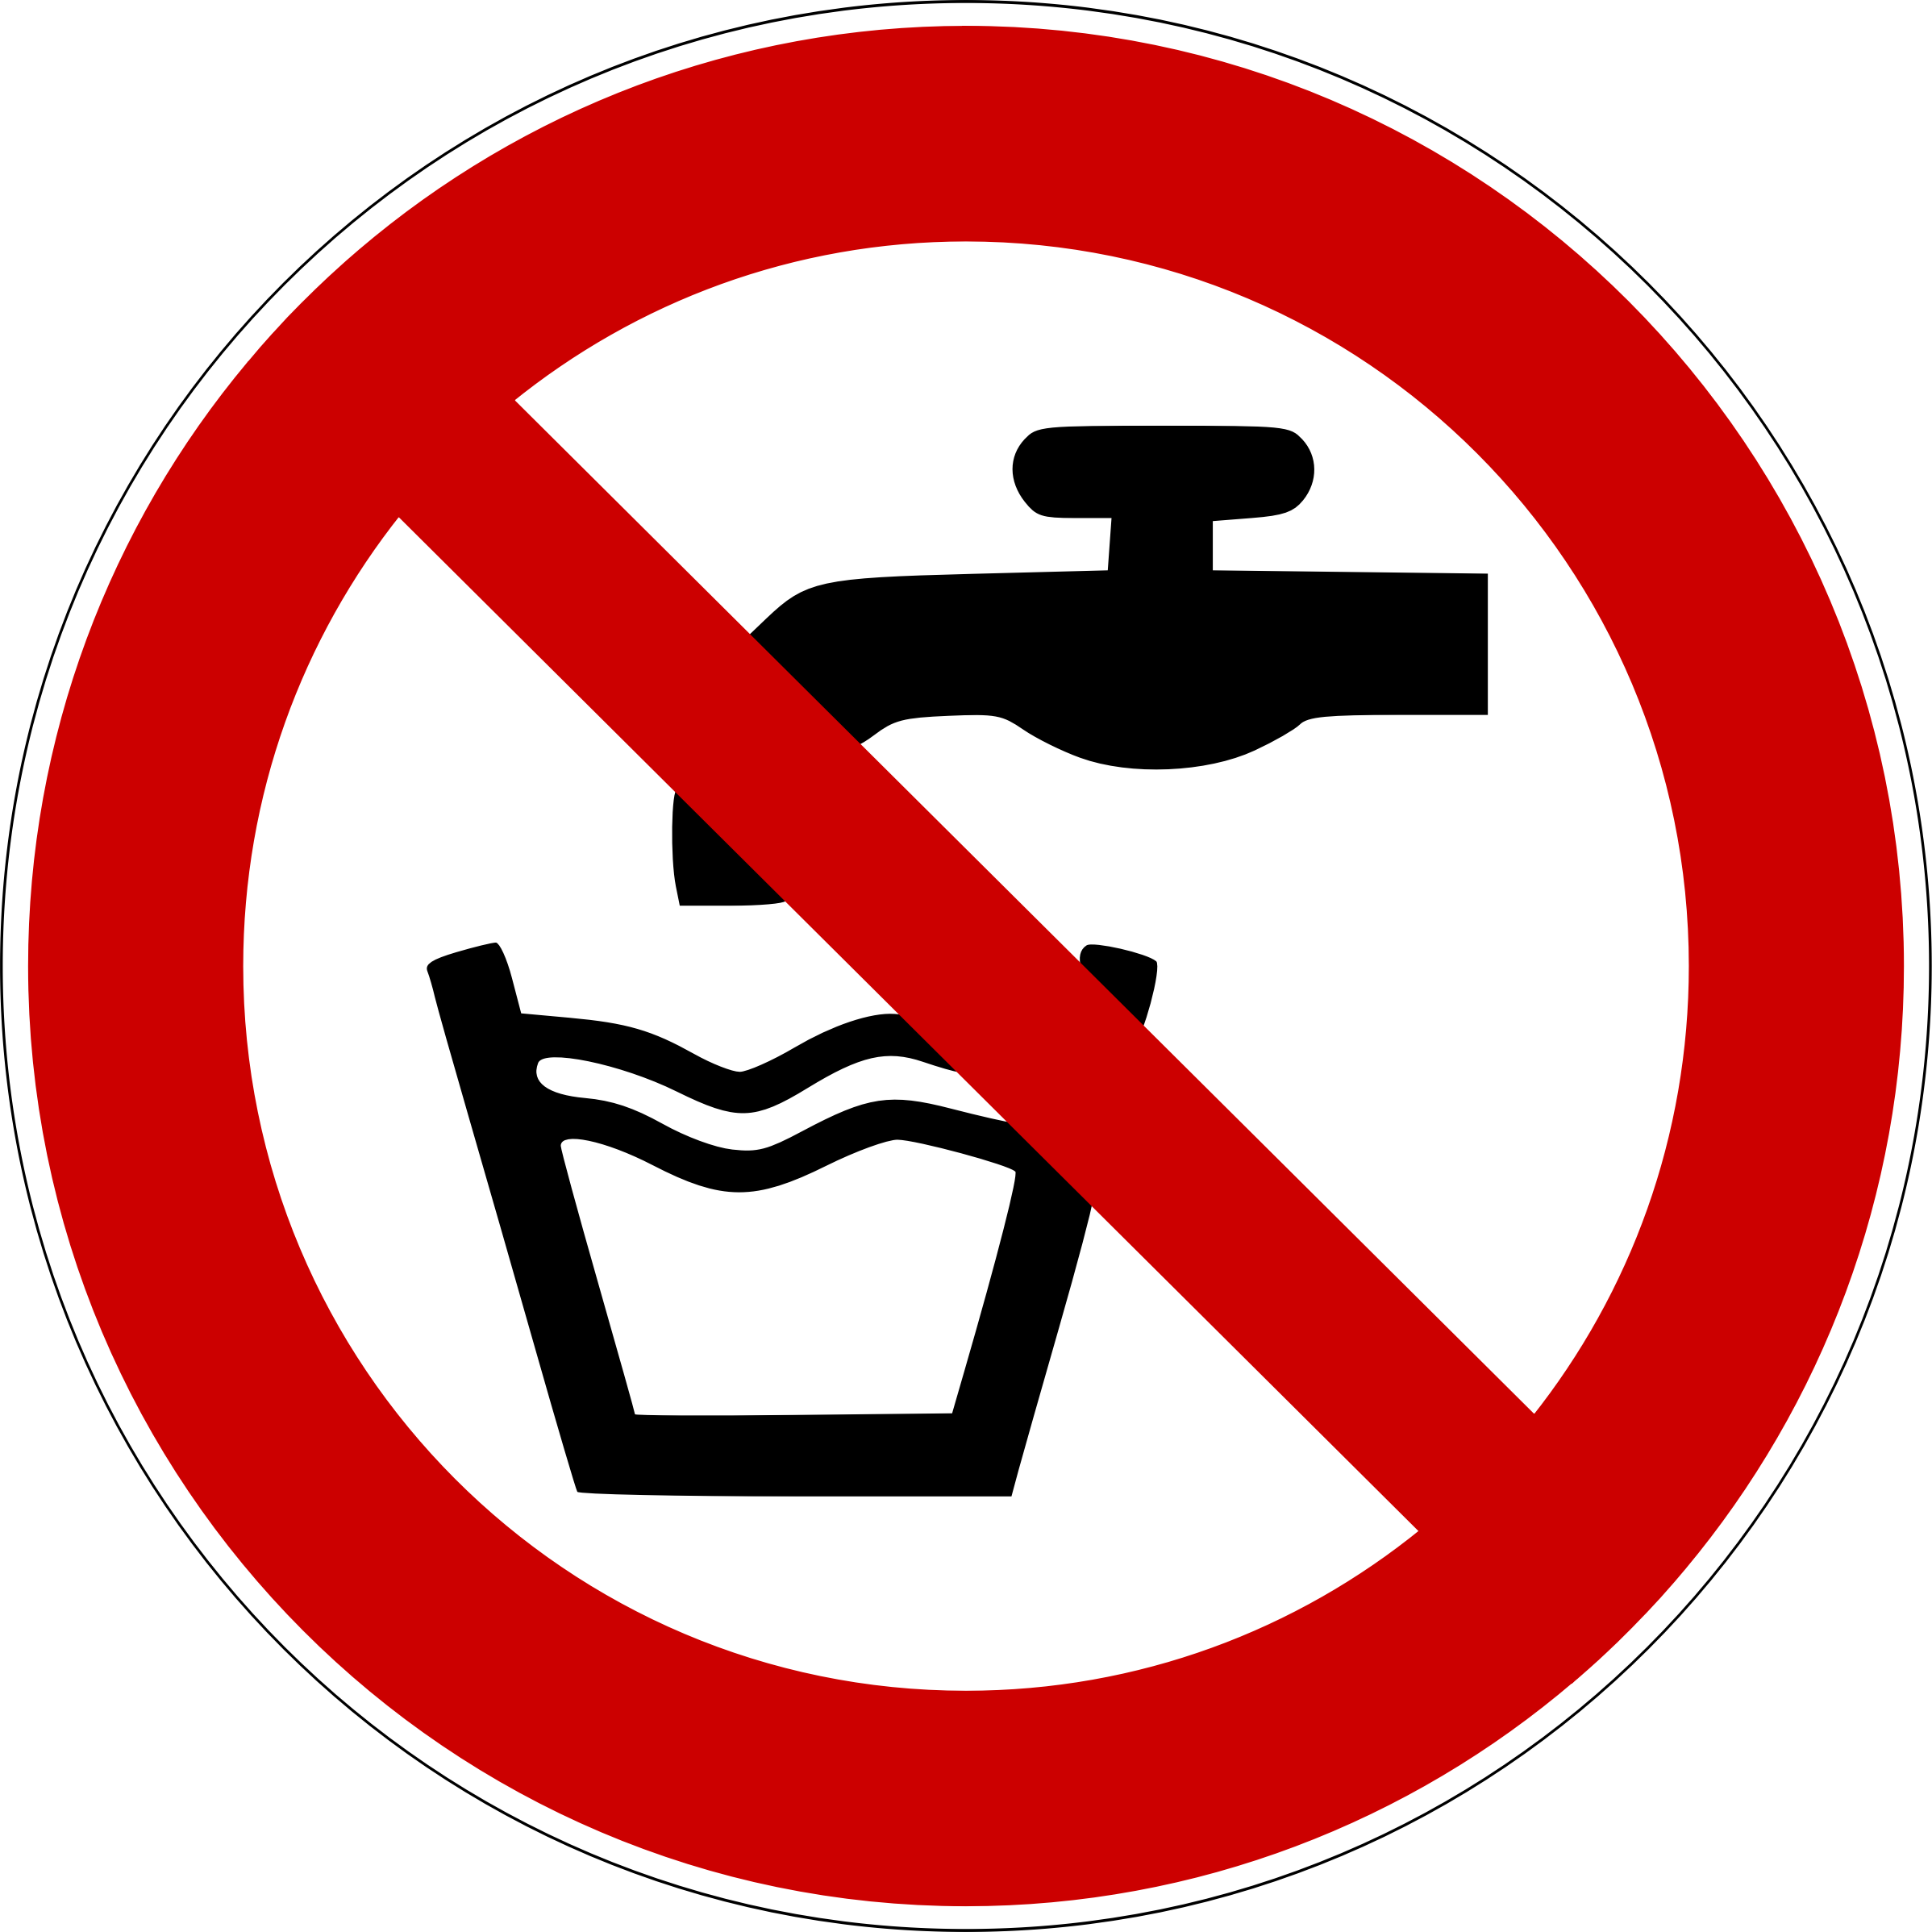 No big image png. Water clipart potable water